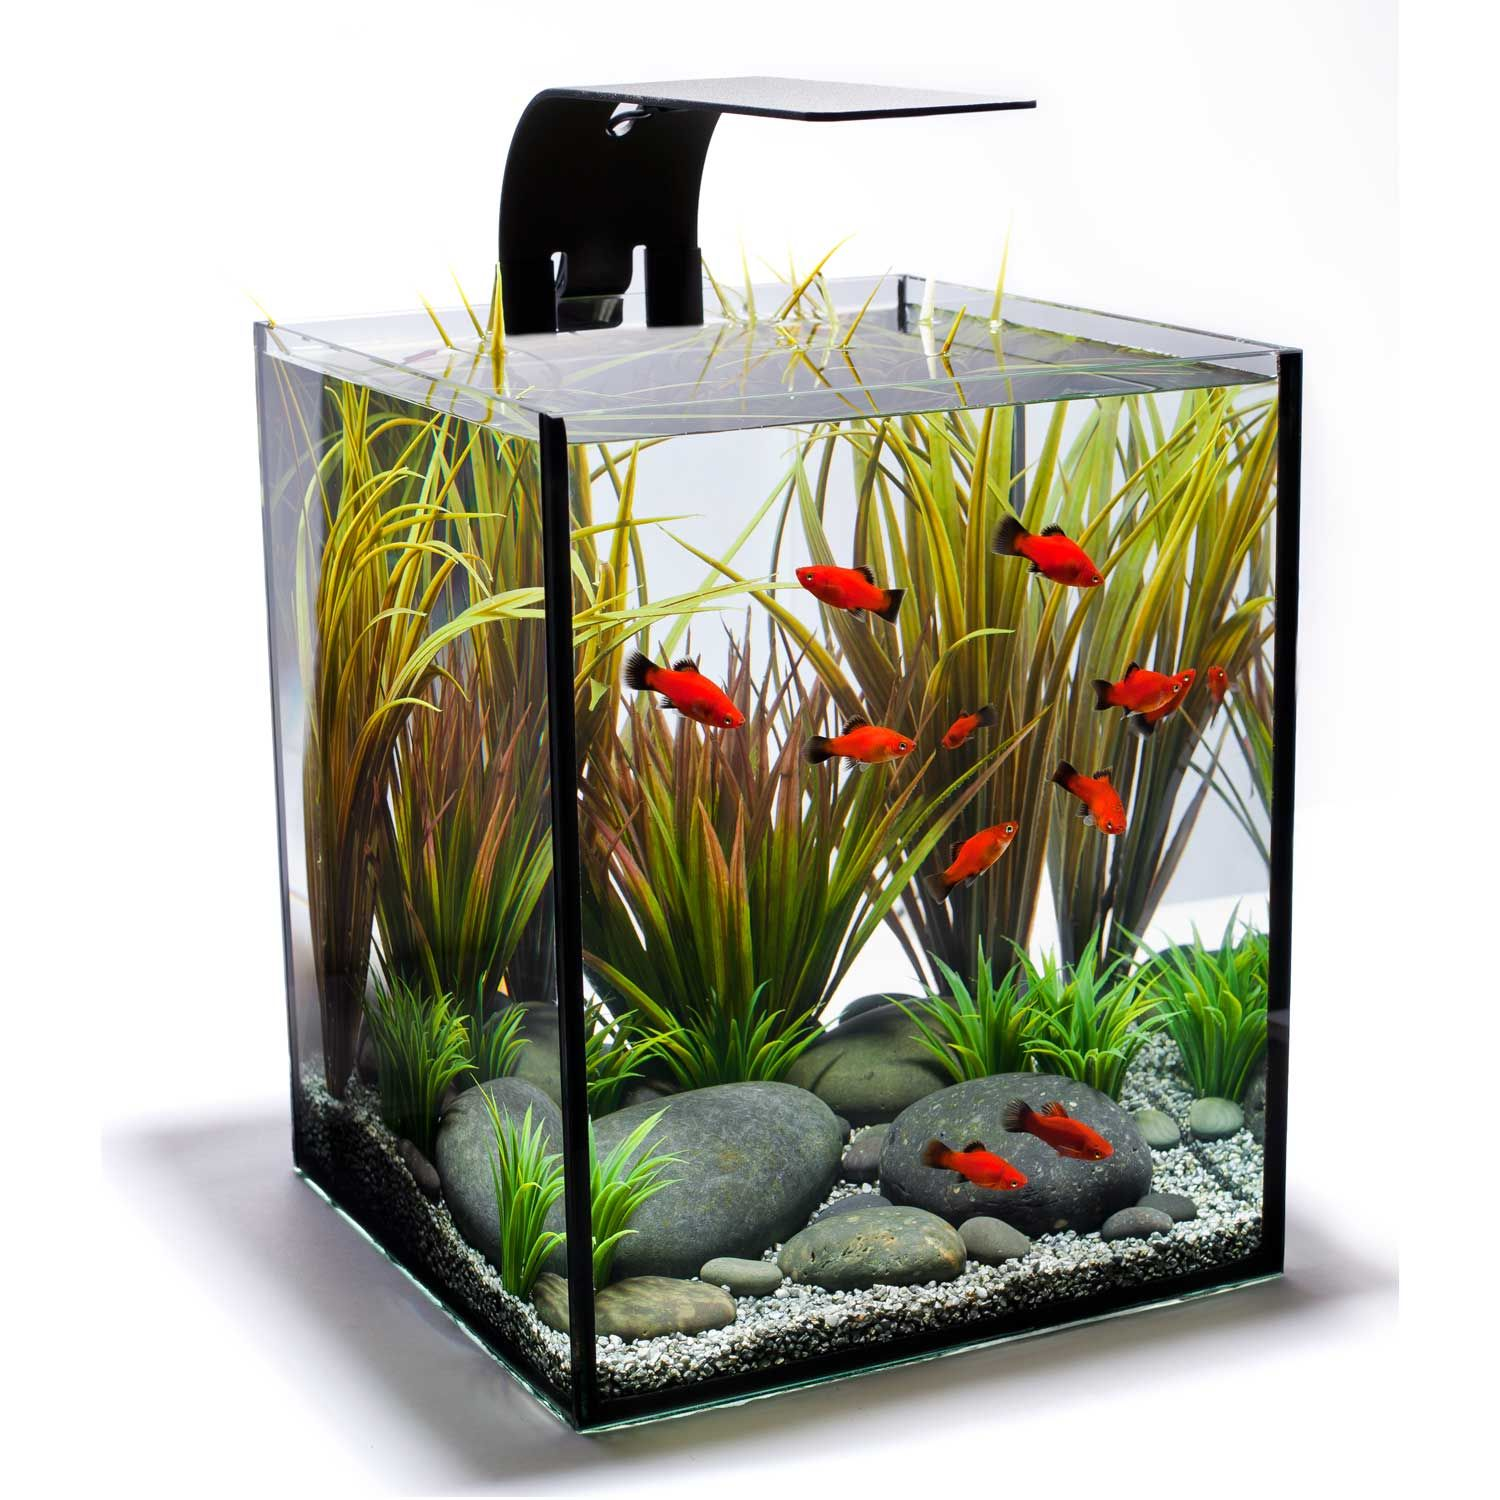 Interested In A Small, Easy To Maintain Aquarium Like This